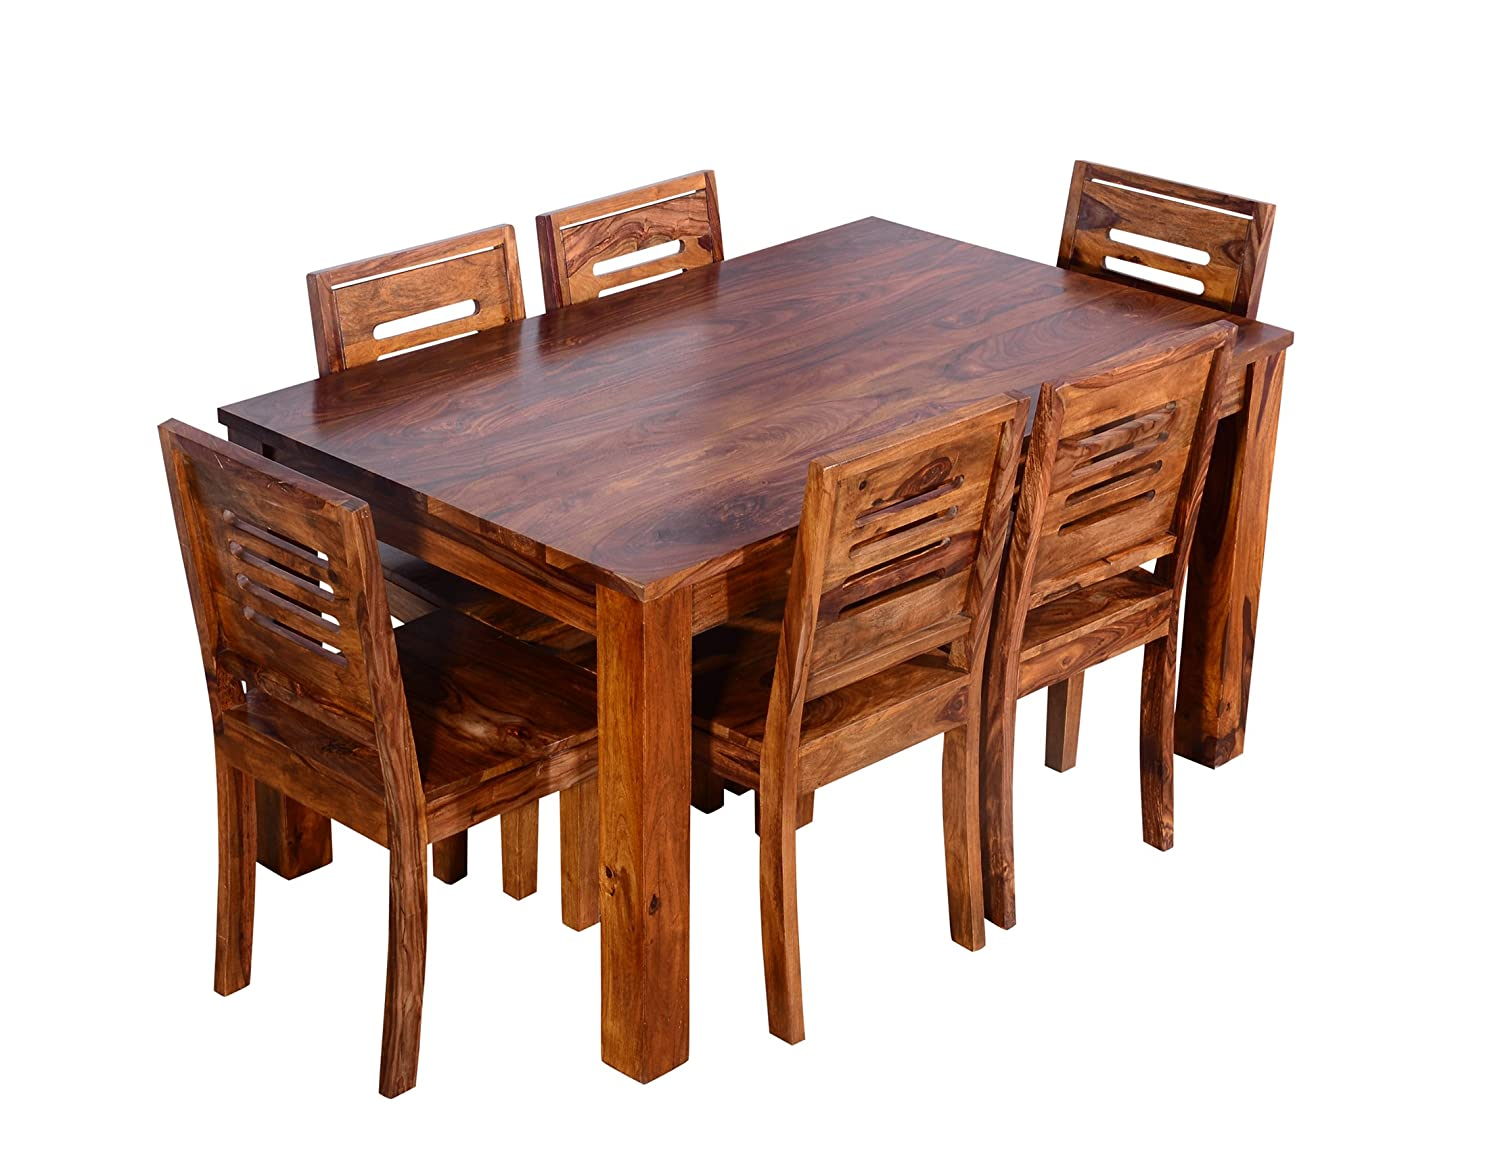 Ringabell square six seater dining table teak finish amazon in home kitchen